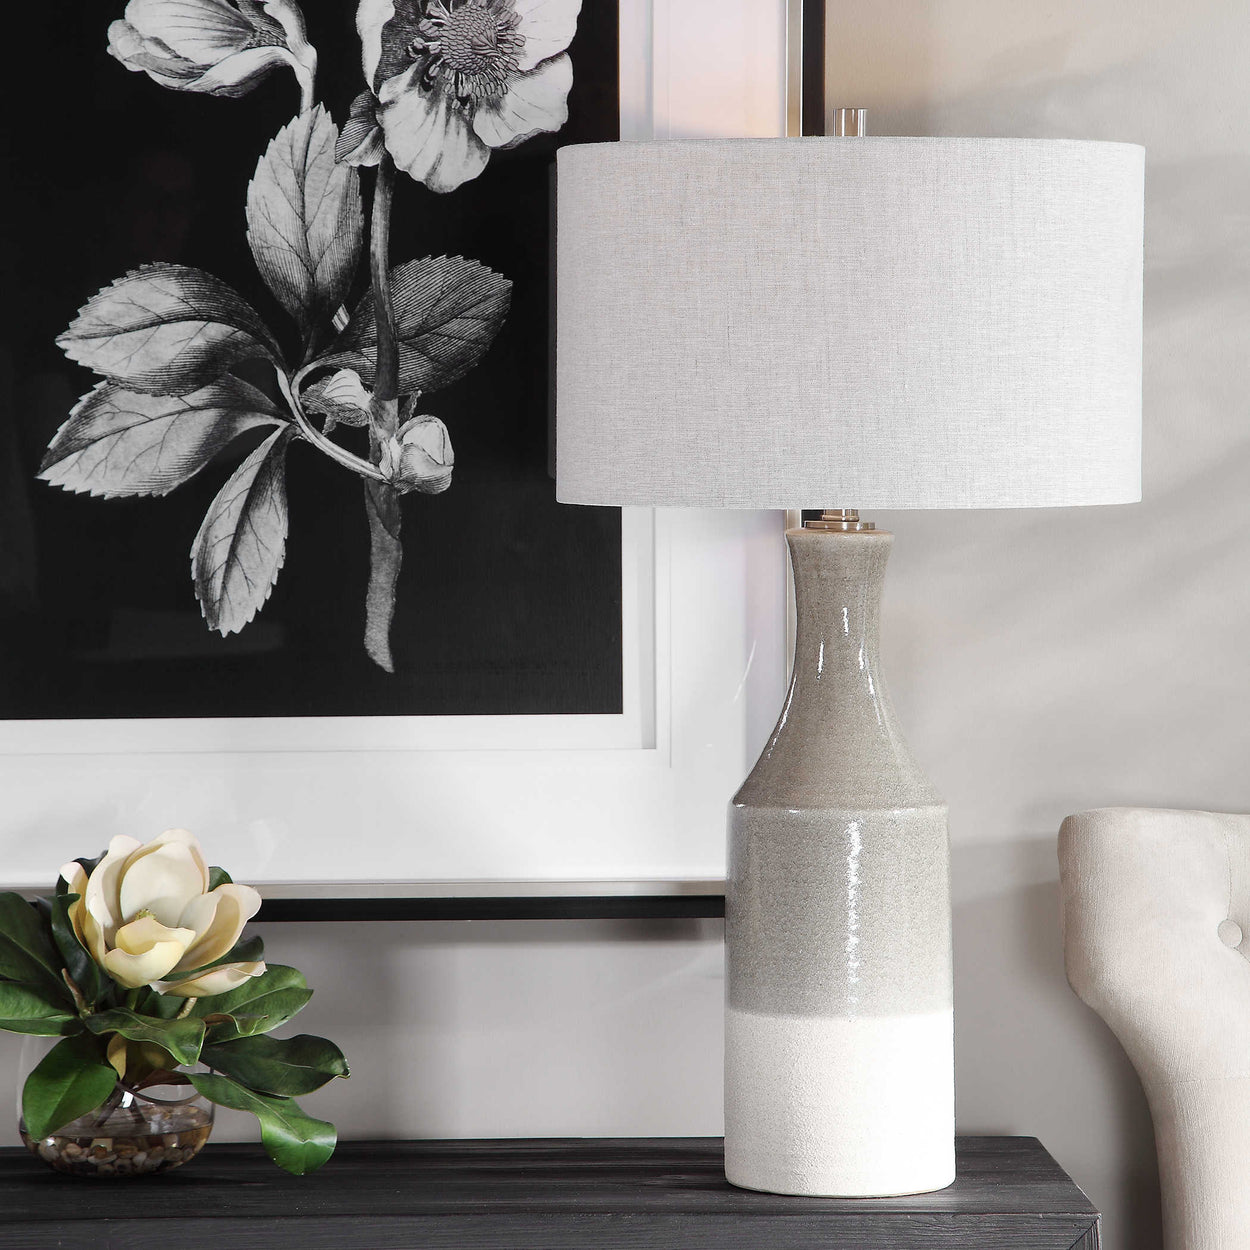 Showcasing a bohemian flair, this ceramic table lamp is finished in a glossy warm gray glaze that transitions to a heavily textured ivory bottom. The hardback drum shade is light gray linen with natural slubbing.